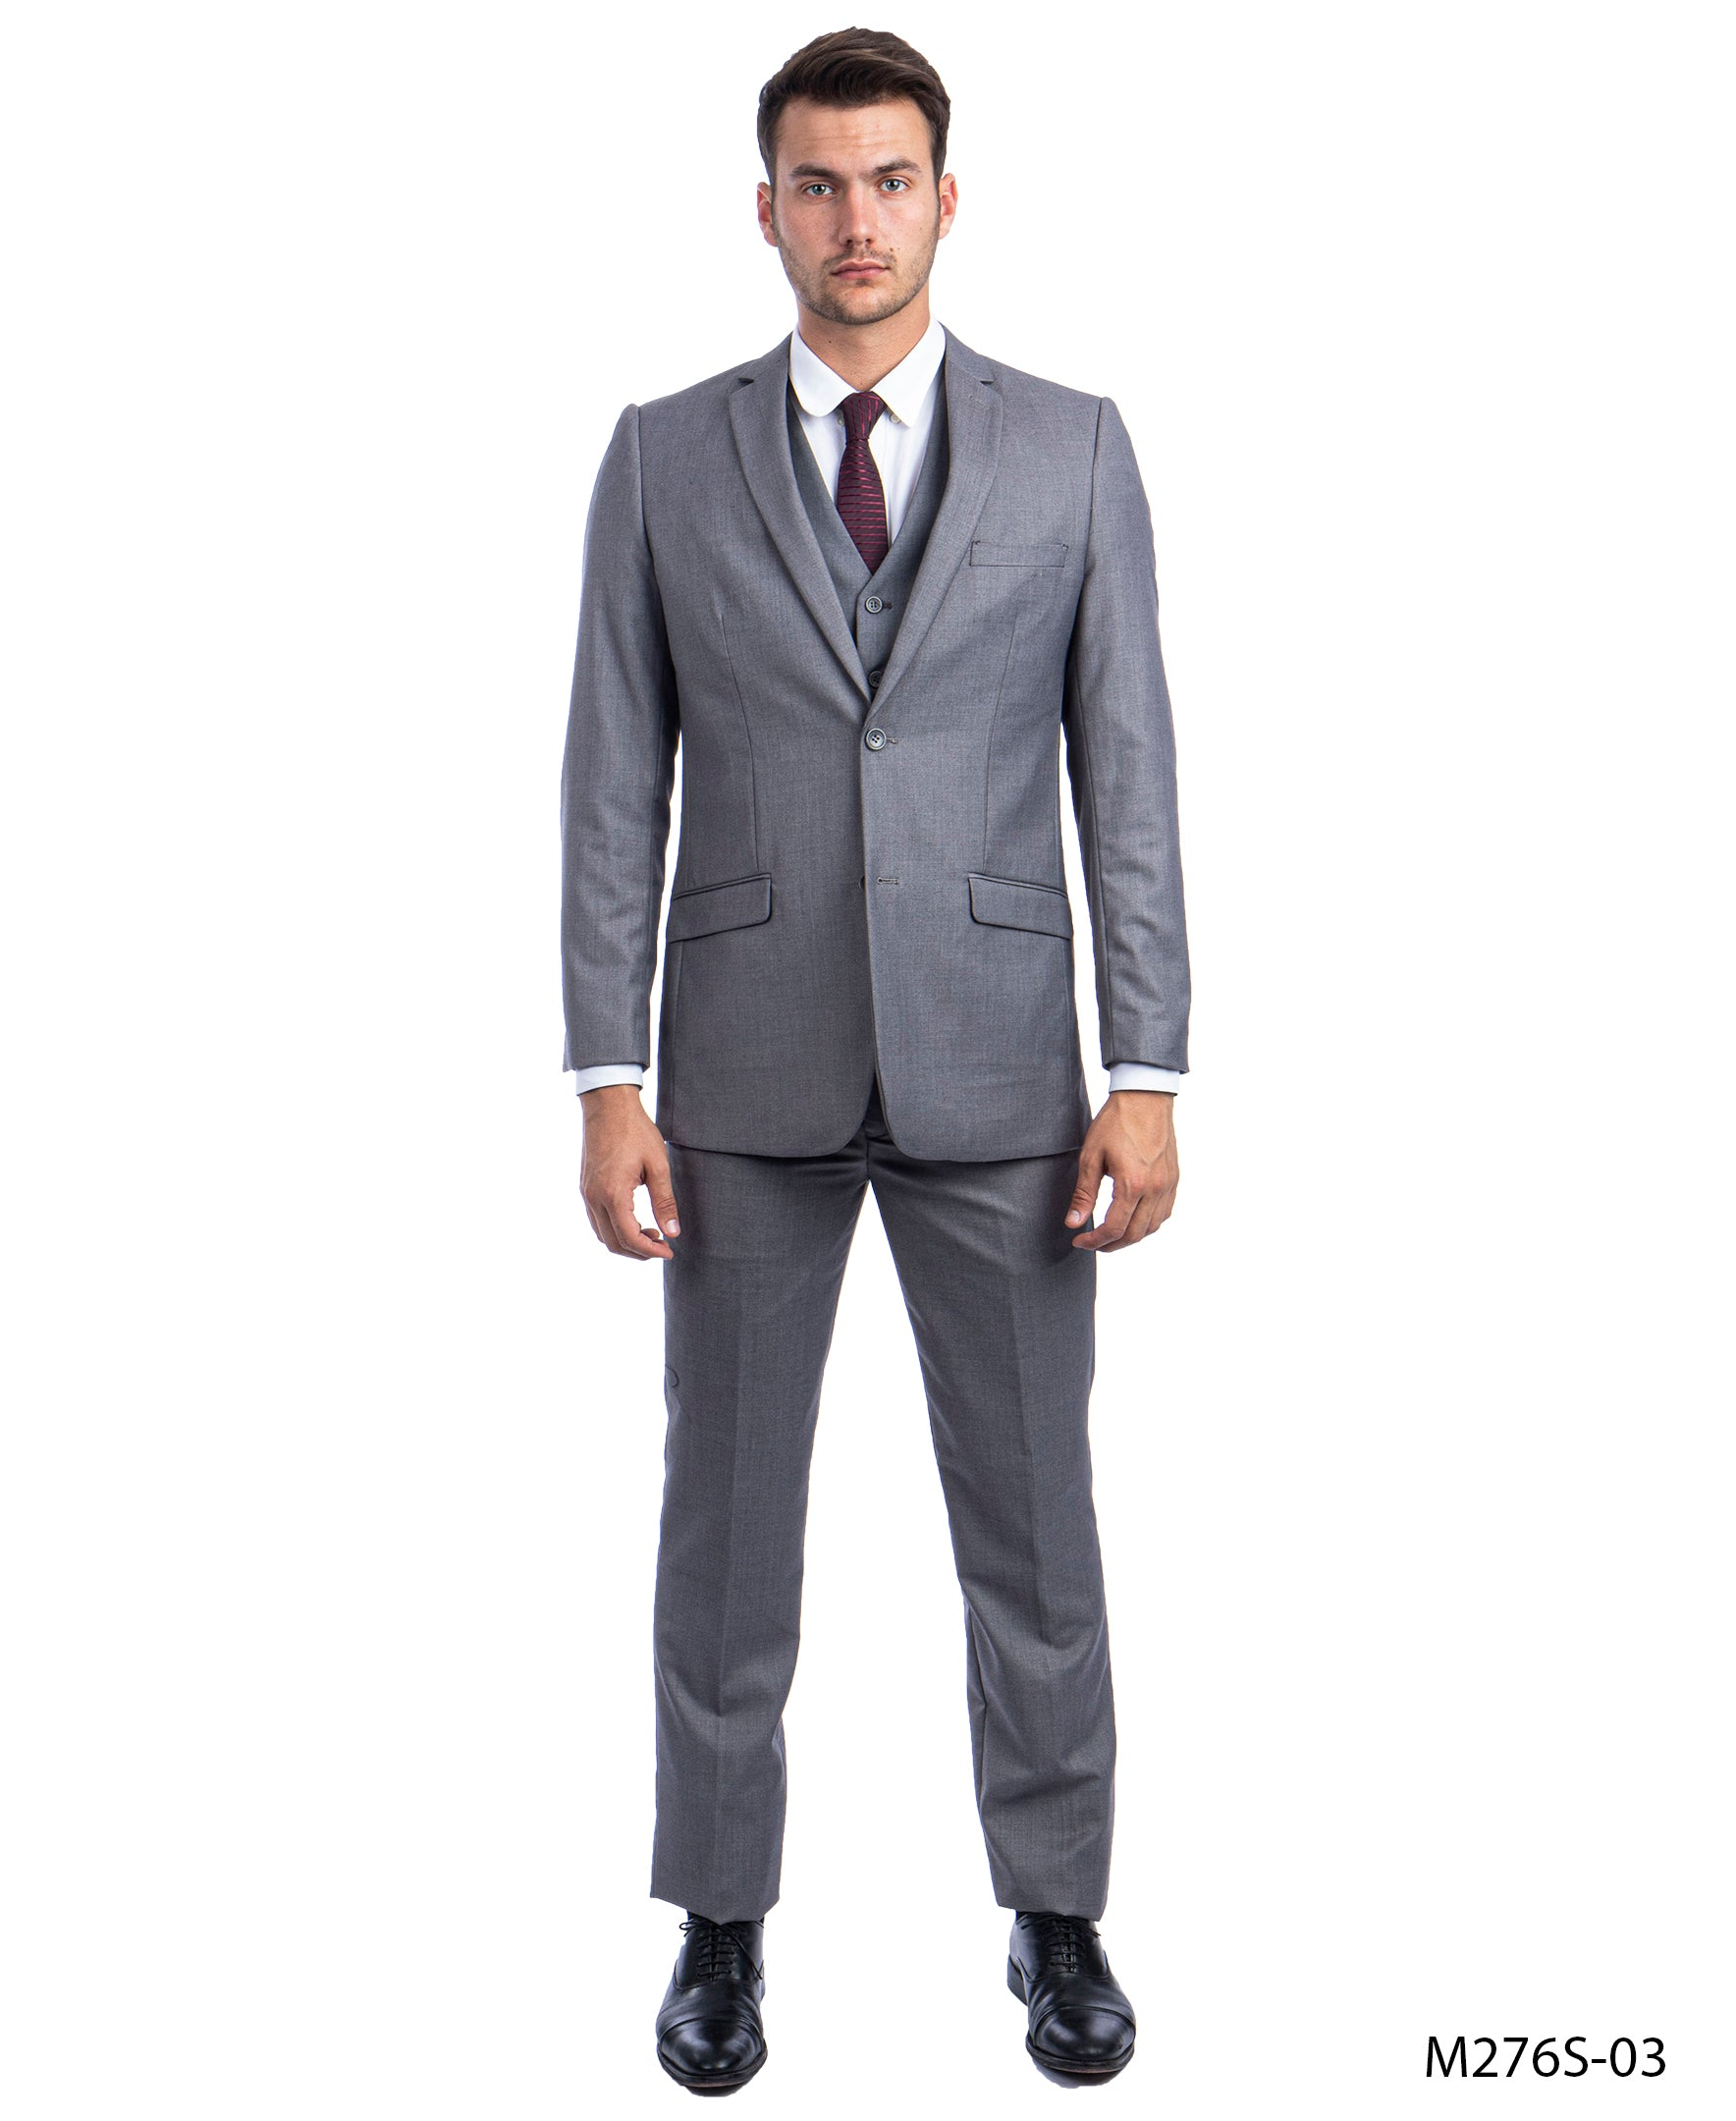 Mid Gray  Suit For Men Formal Suits For All Ocassions